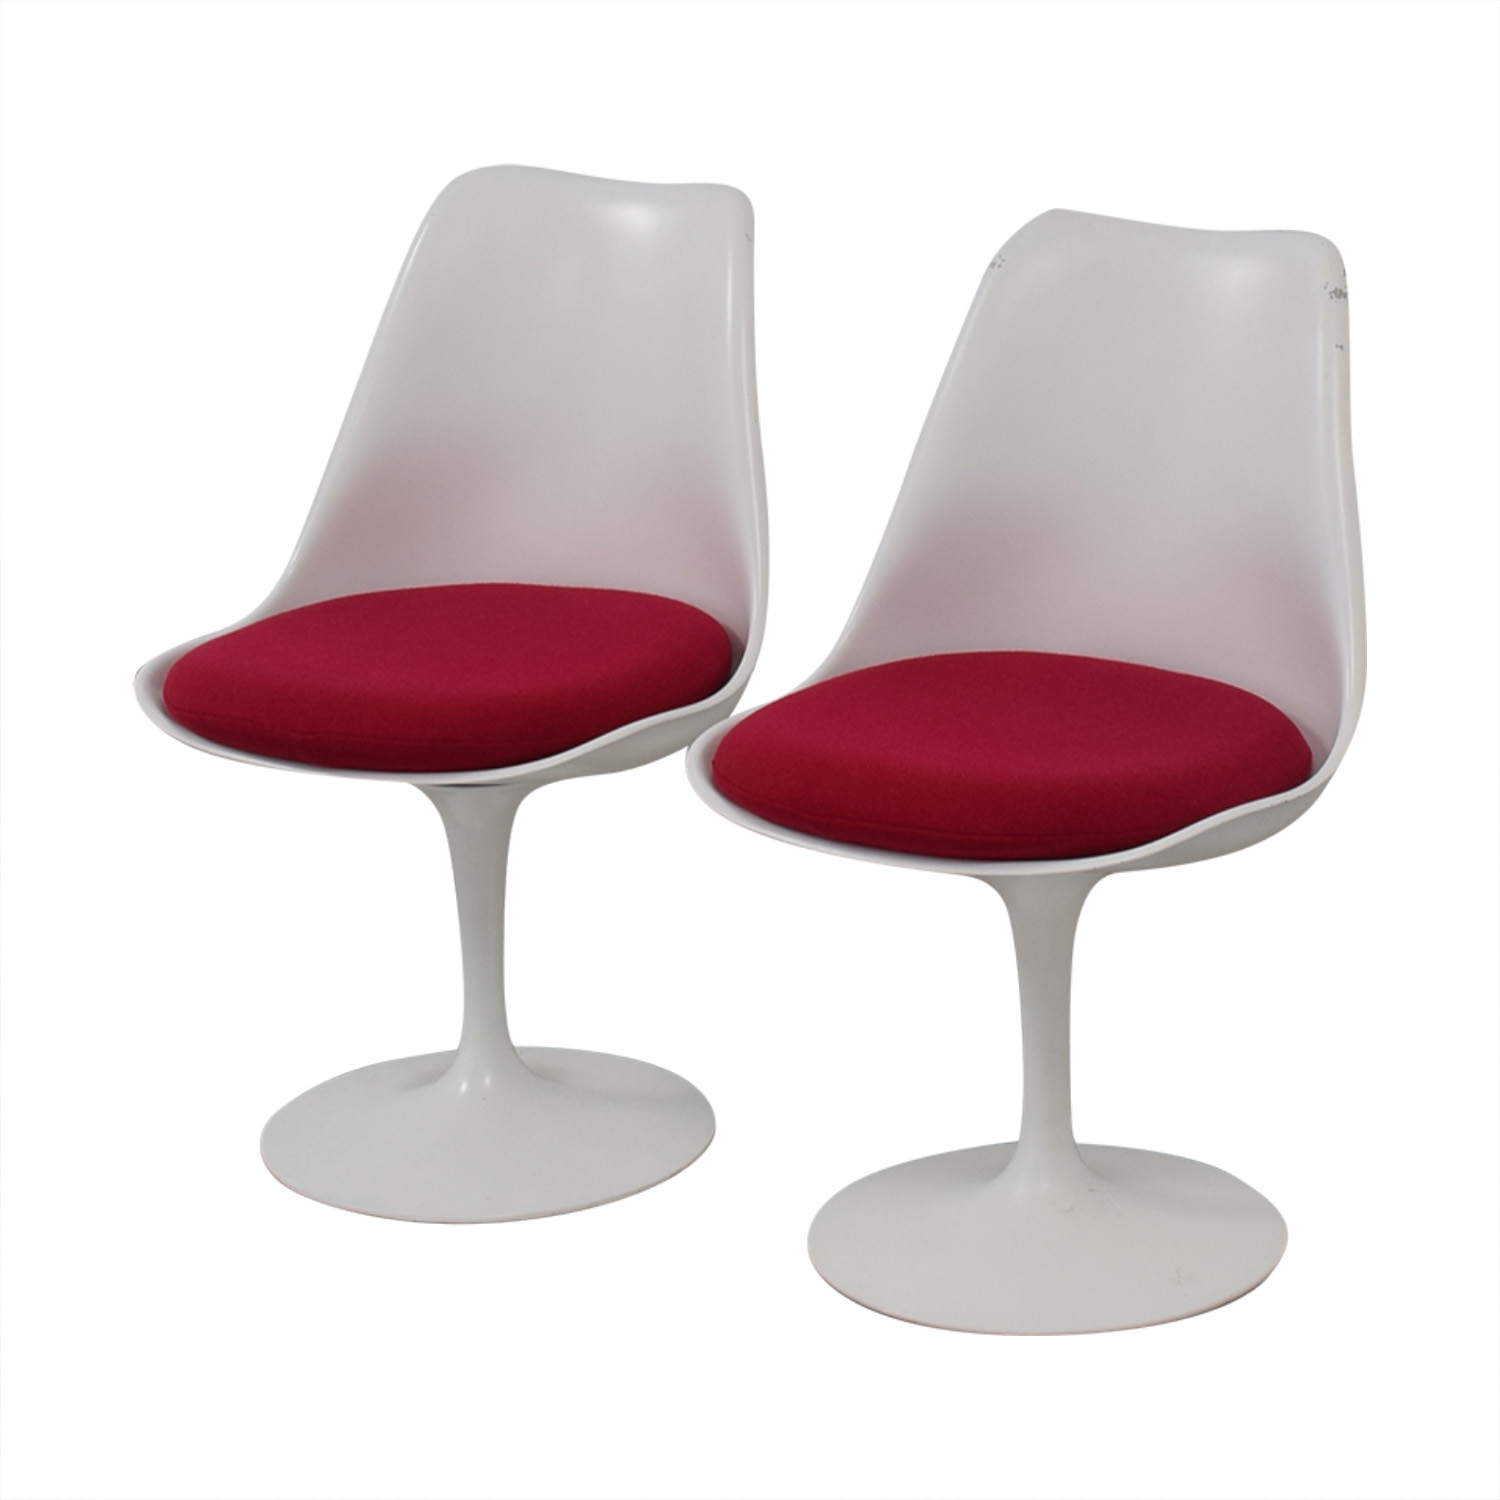 buy Organic Modernism Organic Modernism Es Side Chairs online